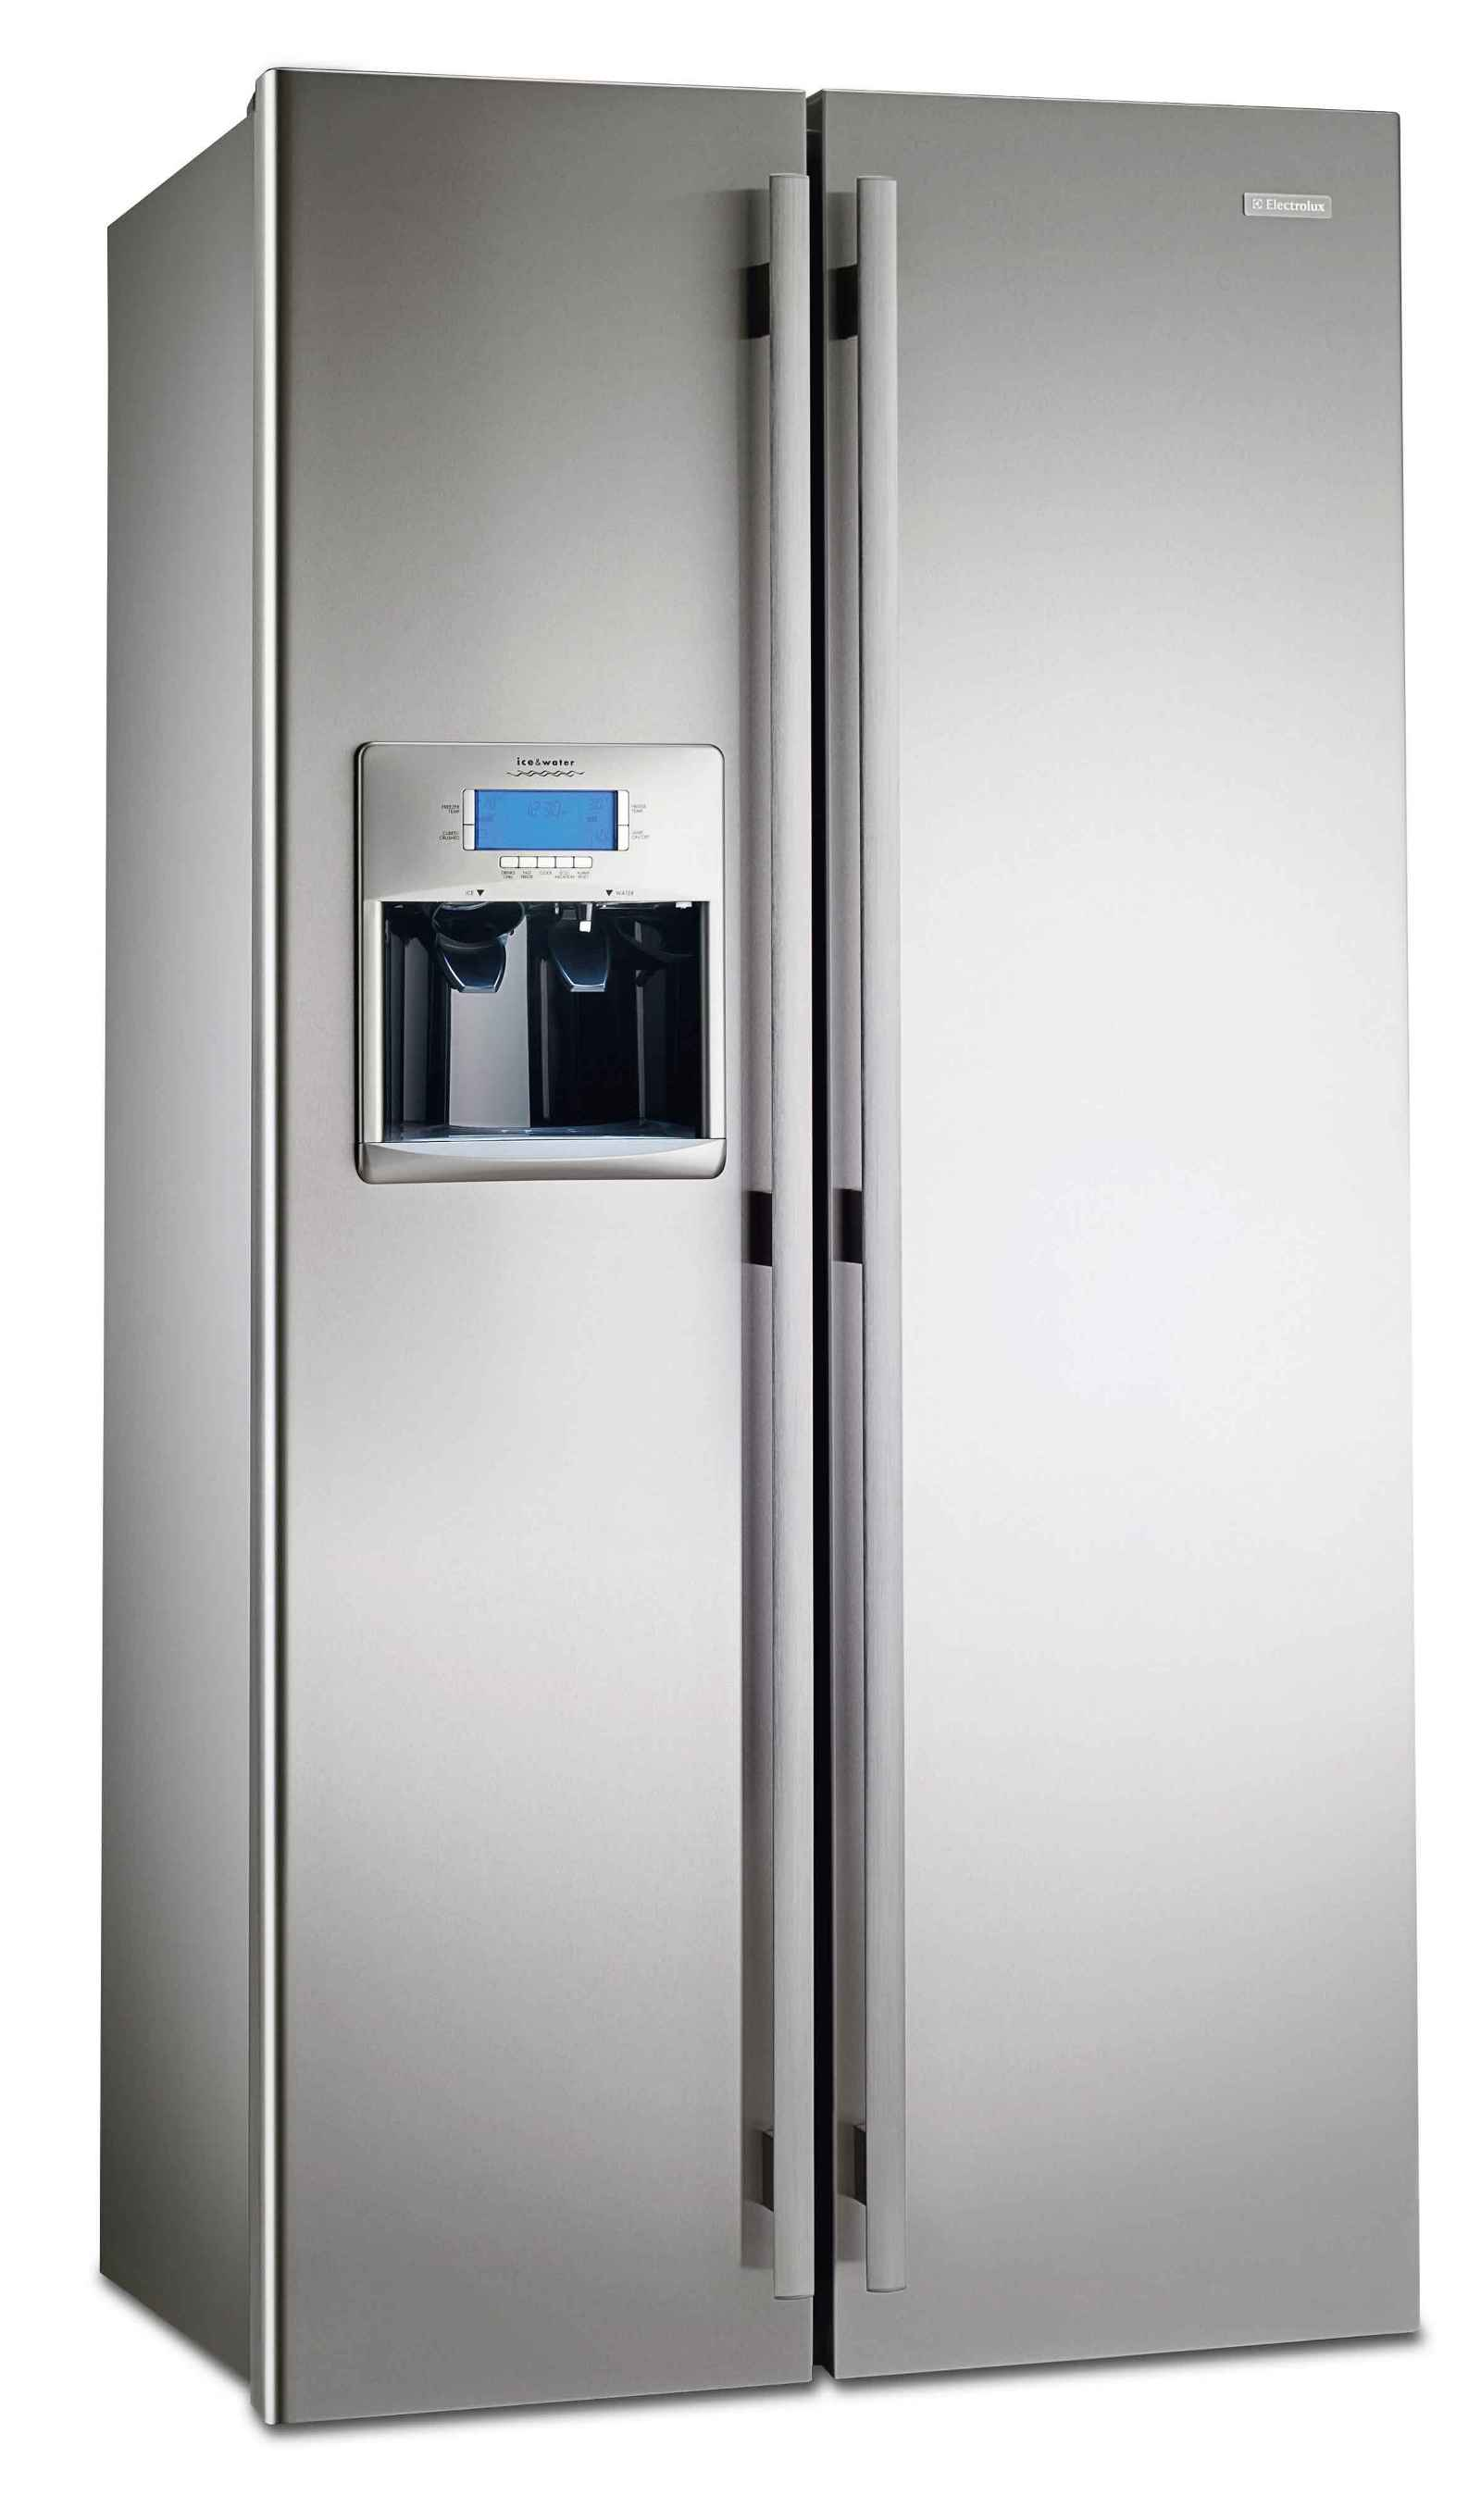 Electrolux Refrigerator Kitchen Appliance